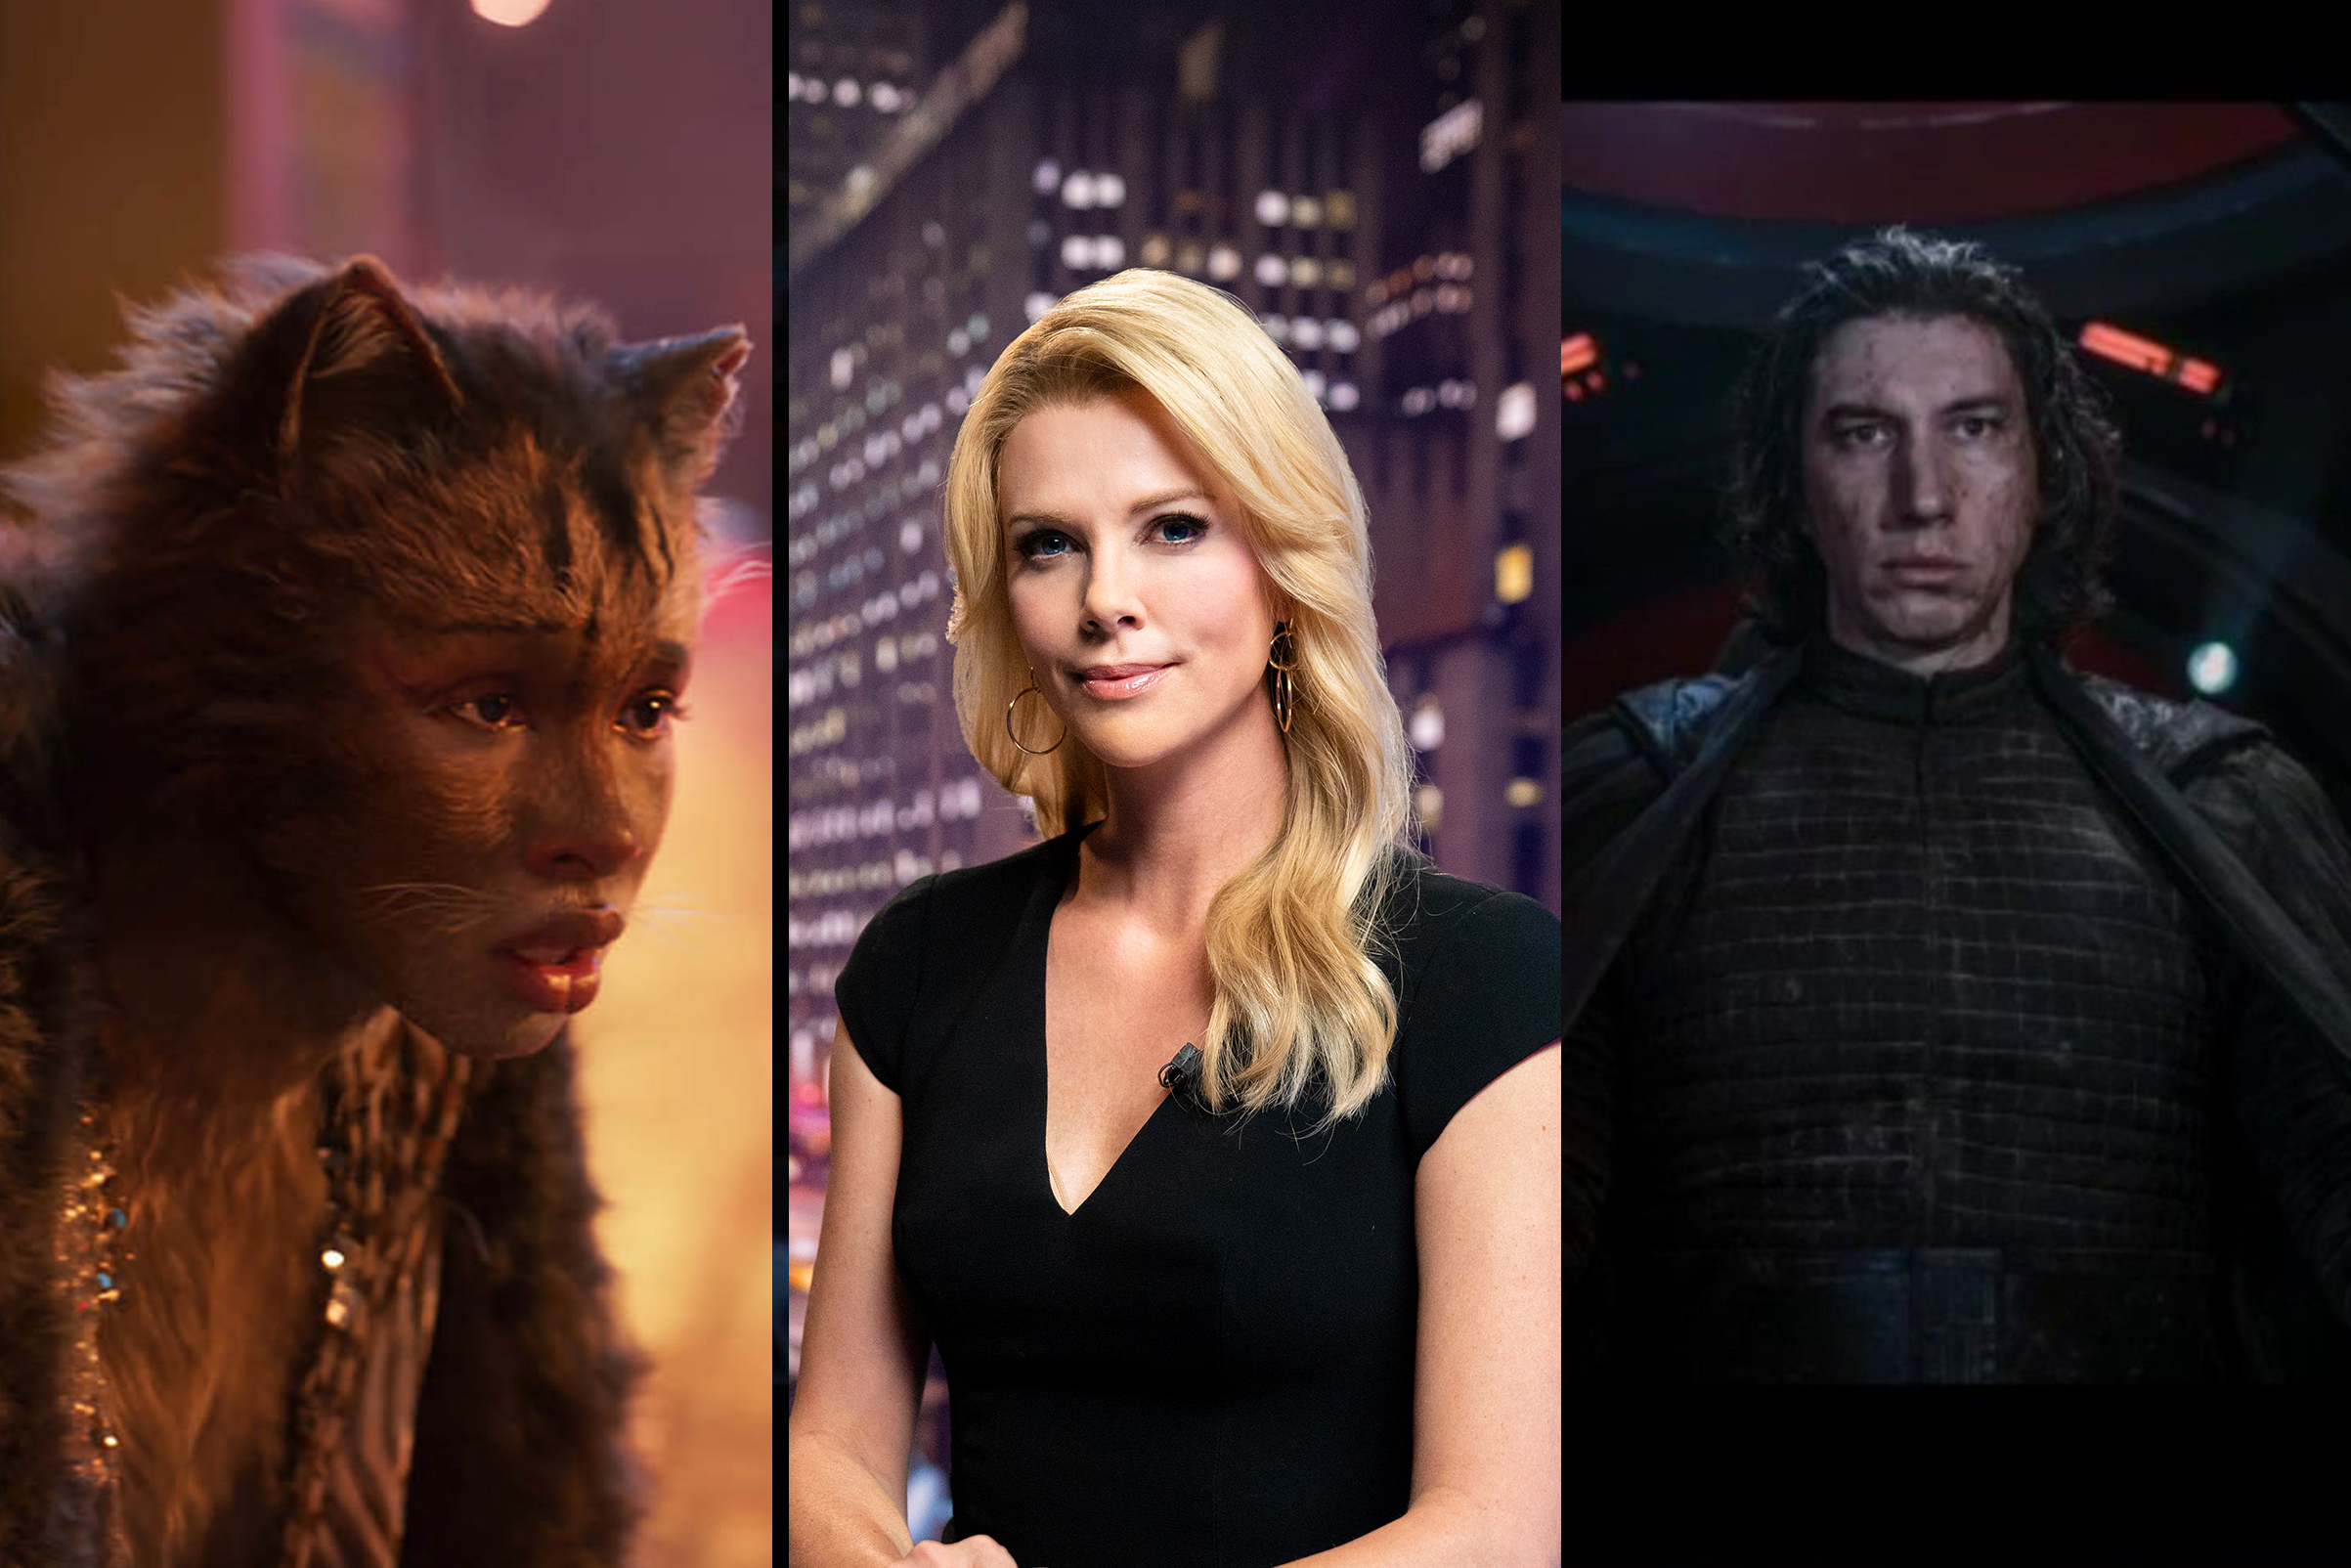 (L-R) Jennifer Hudson in 'Cats', Charlize Theron in 'Bombshell', and Adam Driver in 'Star Wars: The Rise of Skywalker'